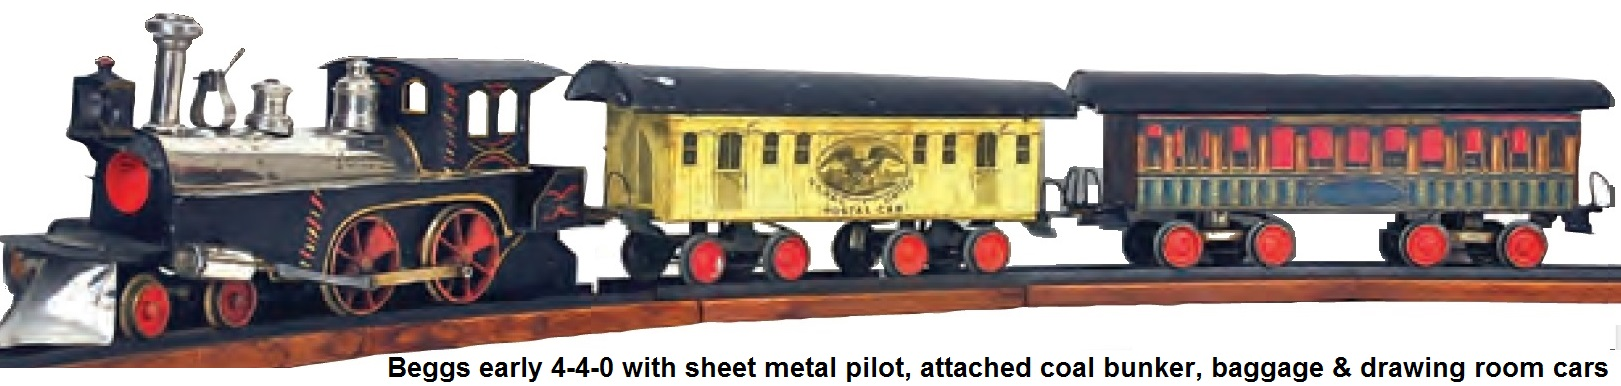 Beggs early 4-4-0 Live-Steam loco with sheet metal pilot, attached coal bunker, paper litho baggage and drawing room cars